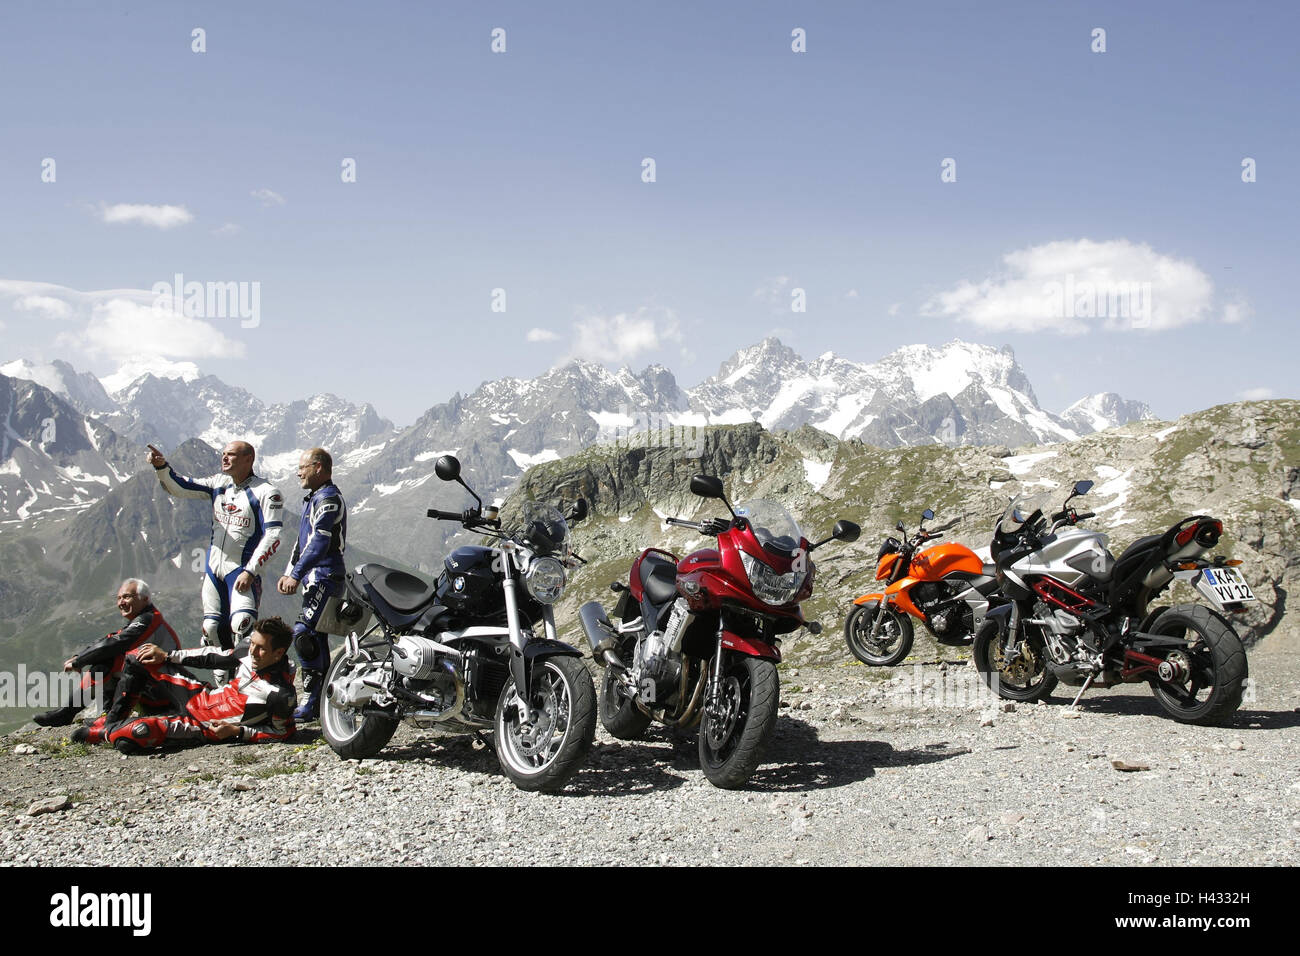 Motorcycles, vertical, alp scenery Banque D'Images